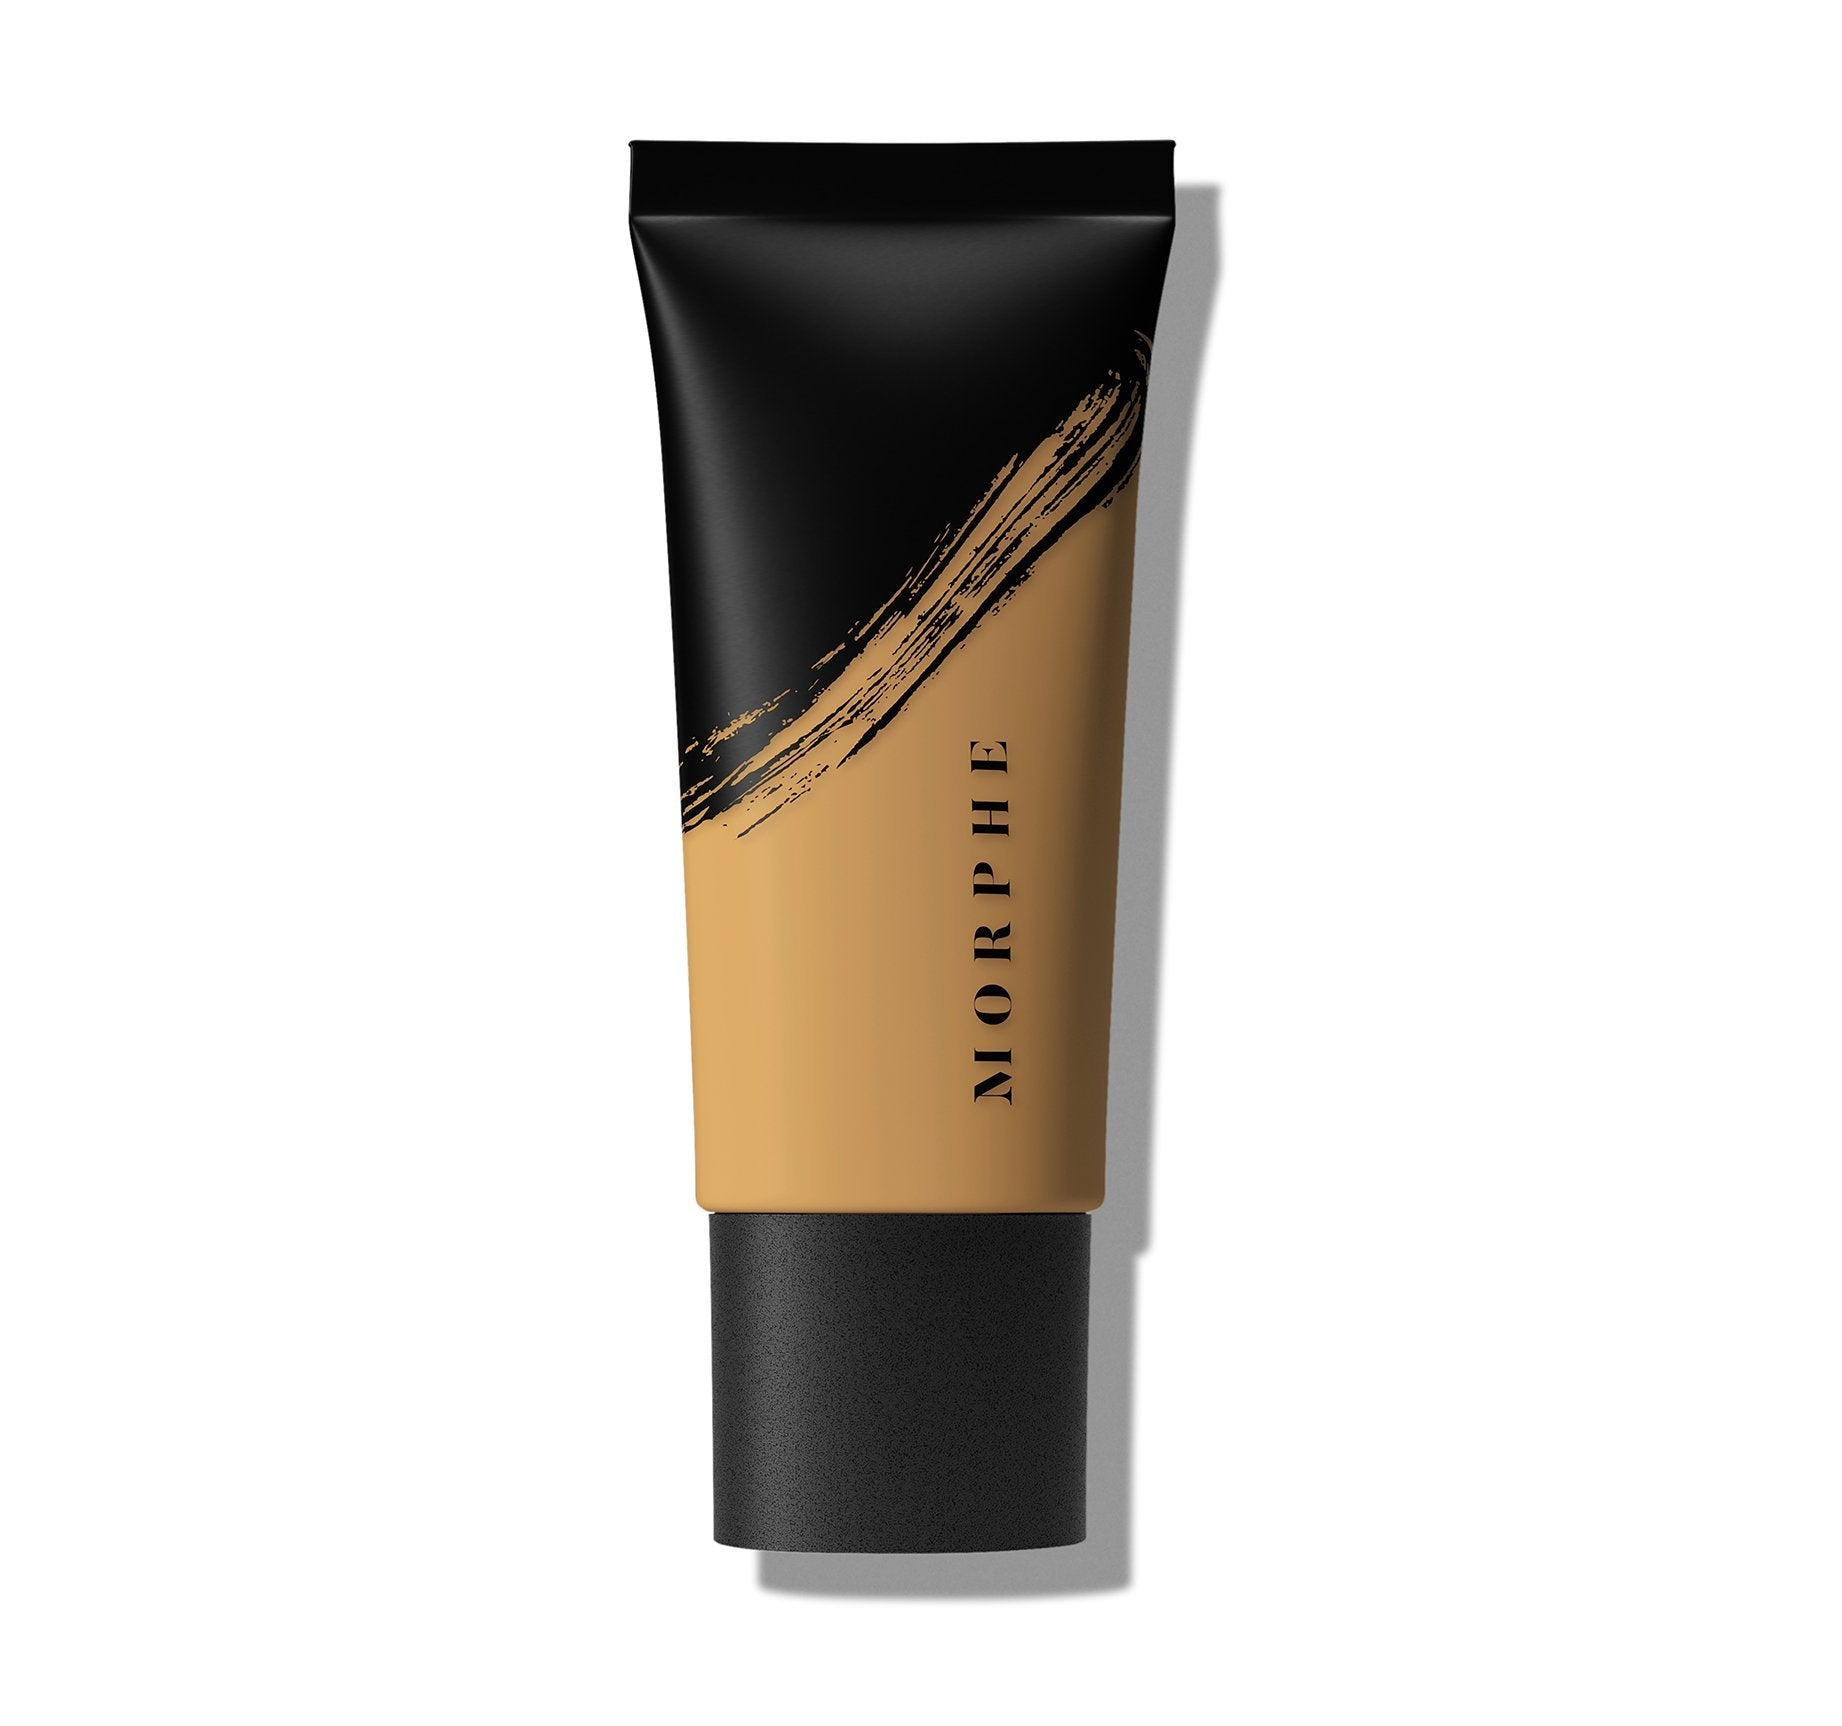 FLUIDITY FULL-COVERAGE FOUNDATION - F2.50, view larger image